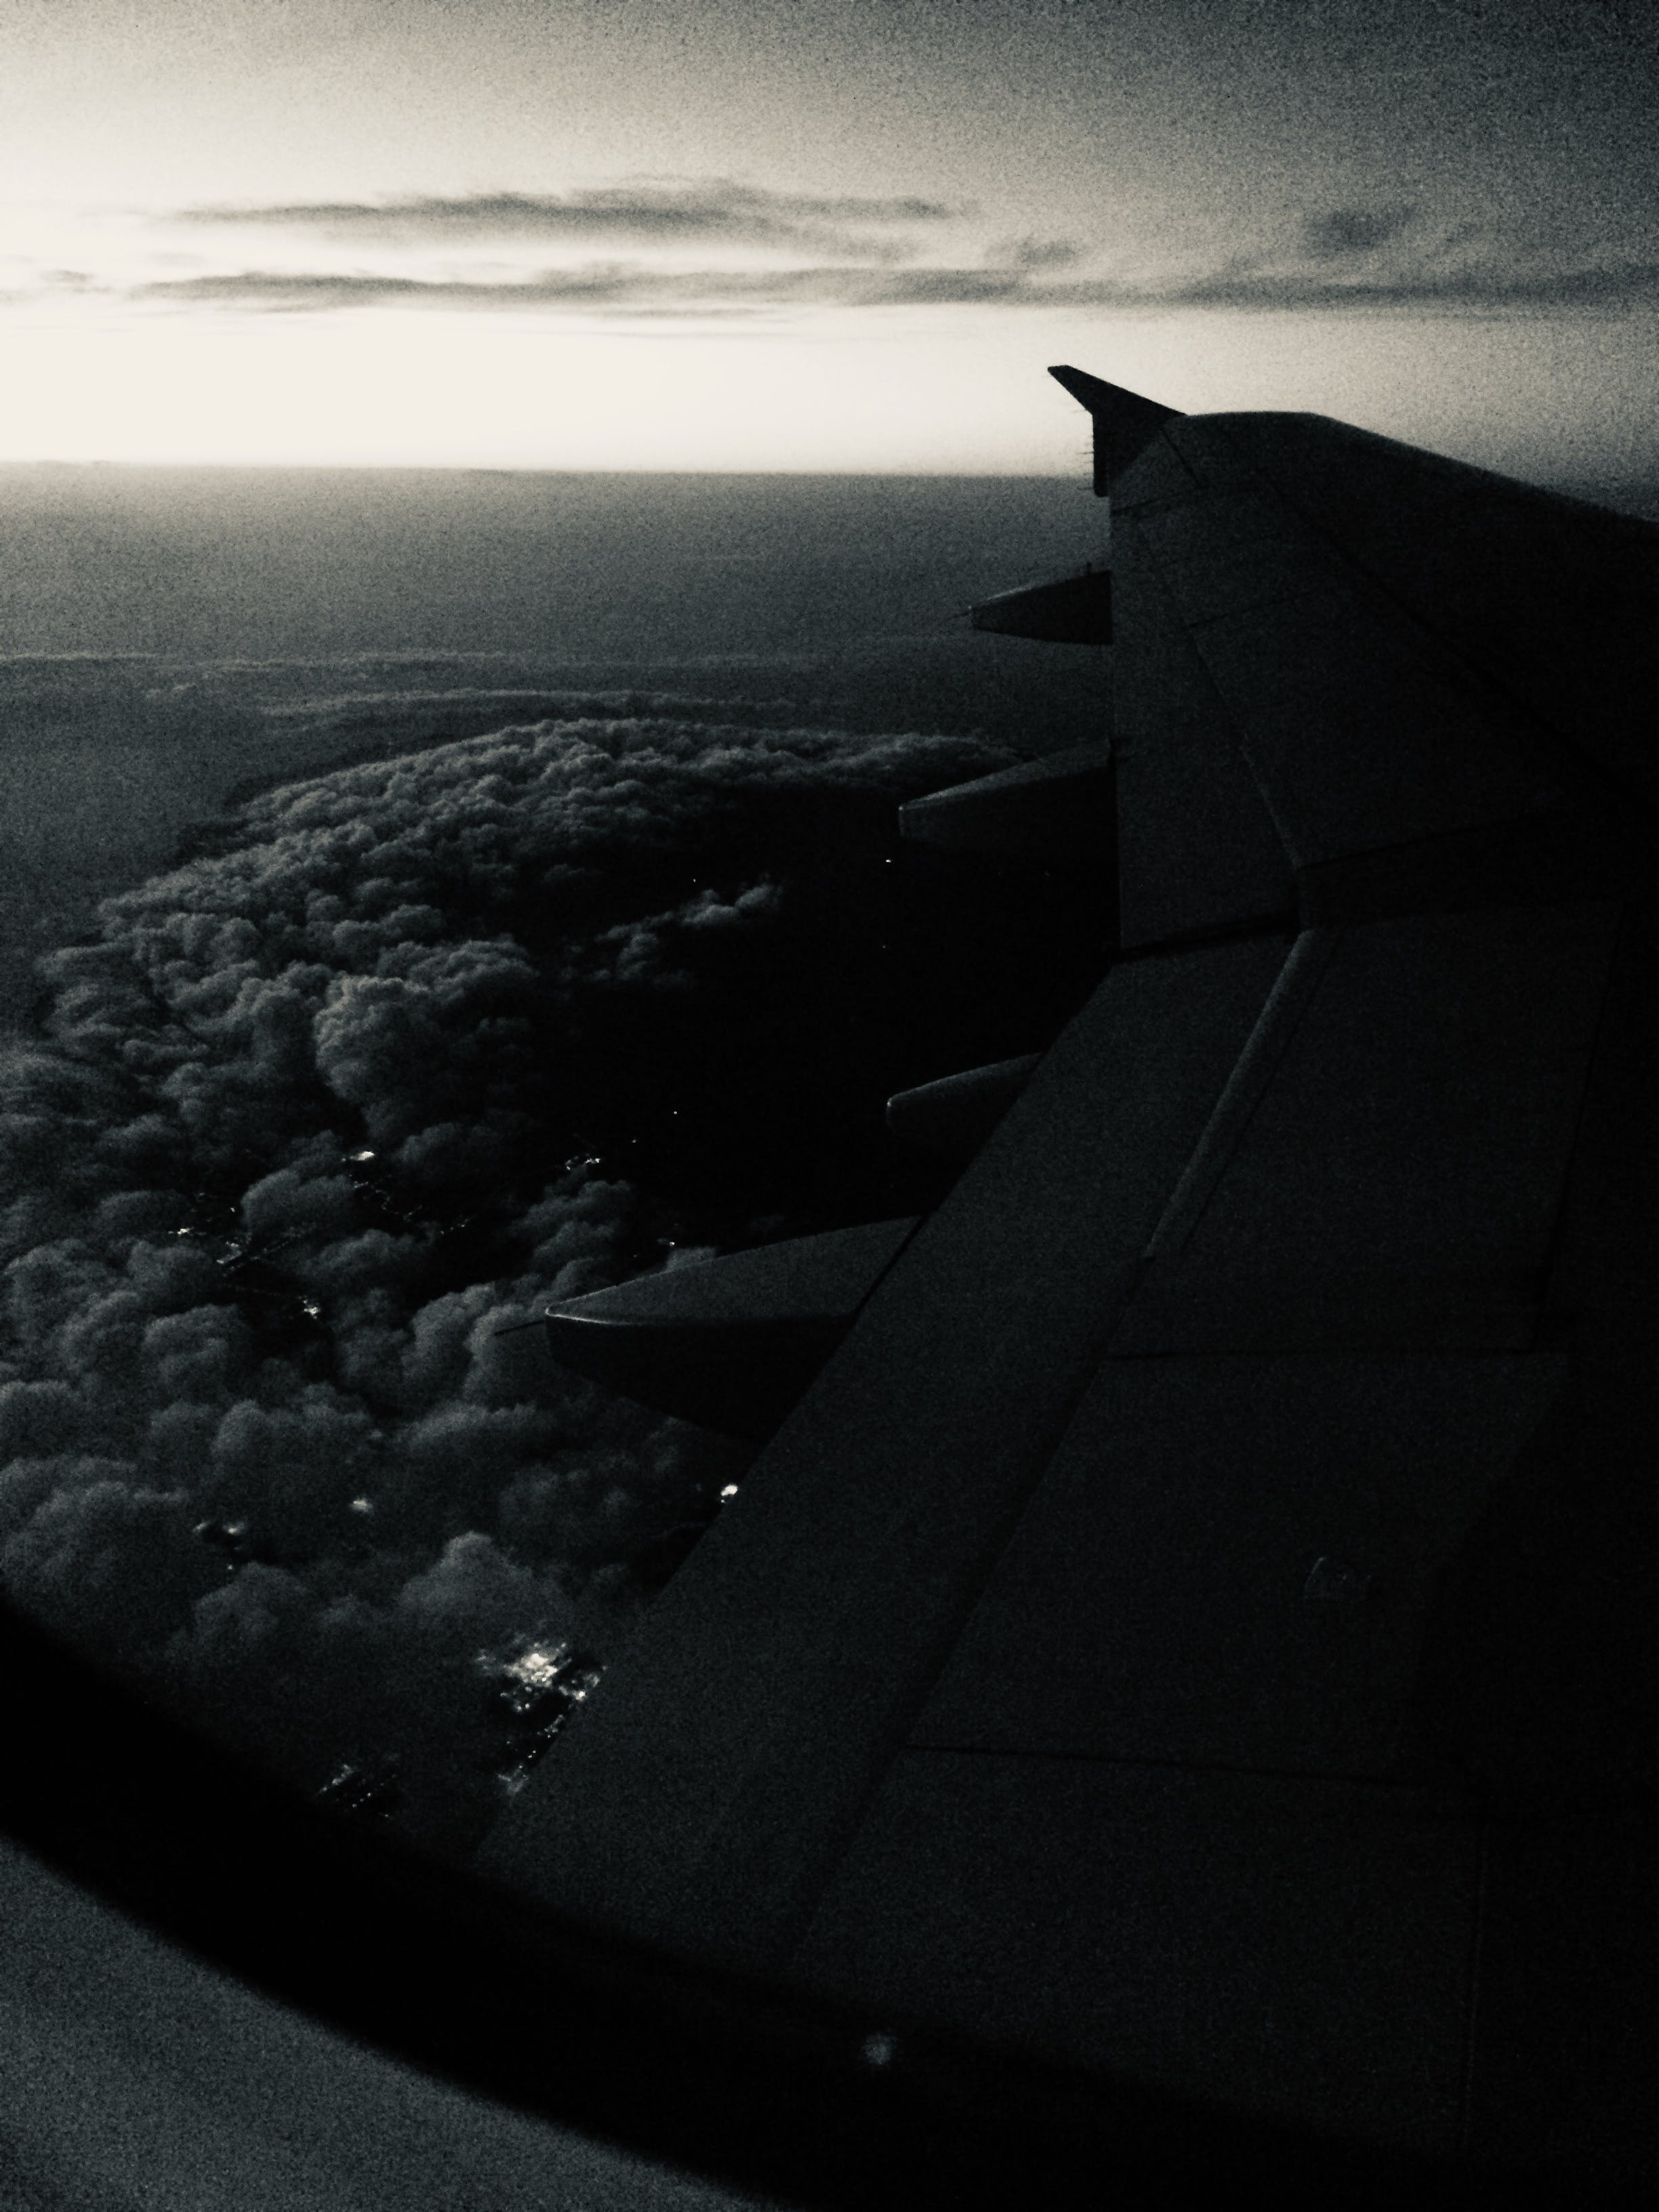 Free stock photo of airplane, airplane wing, cloud